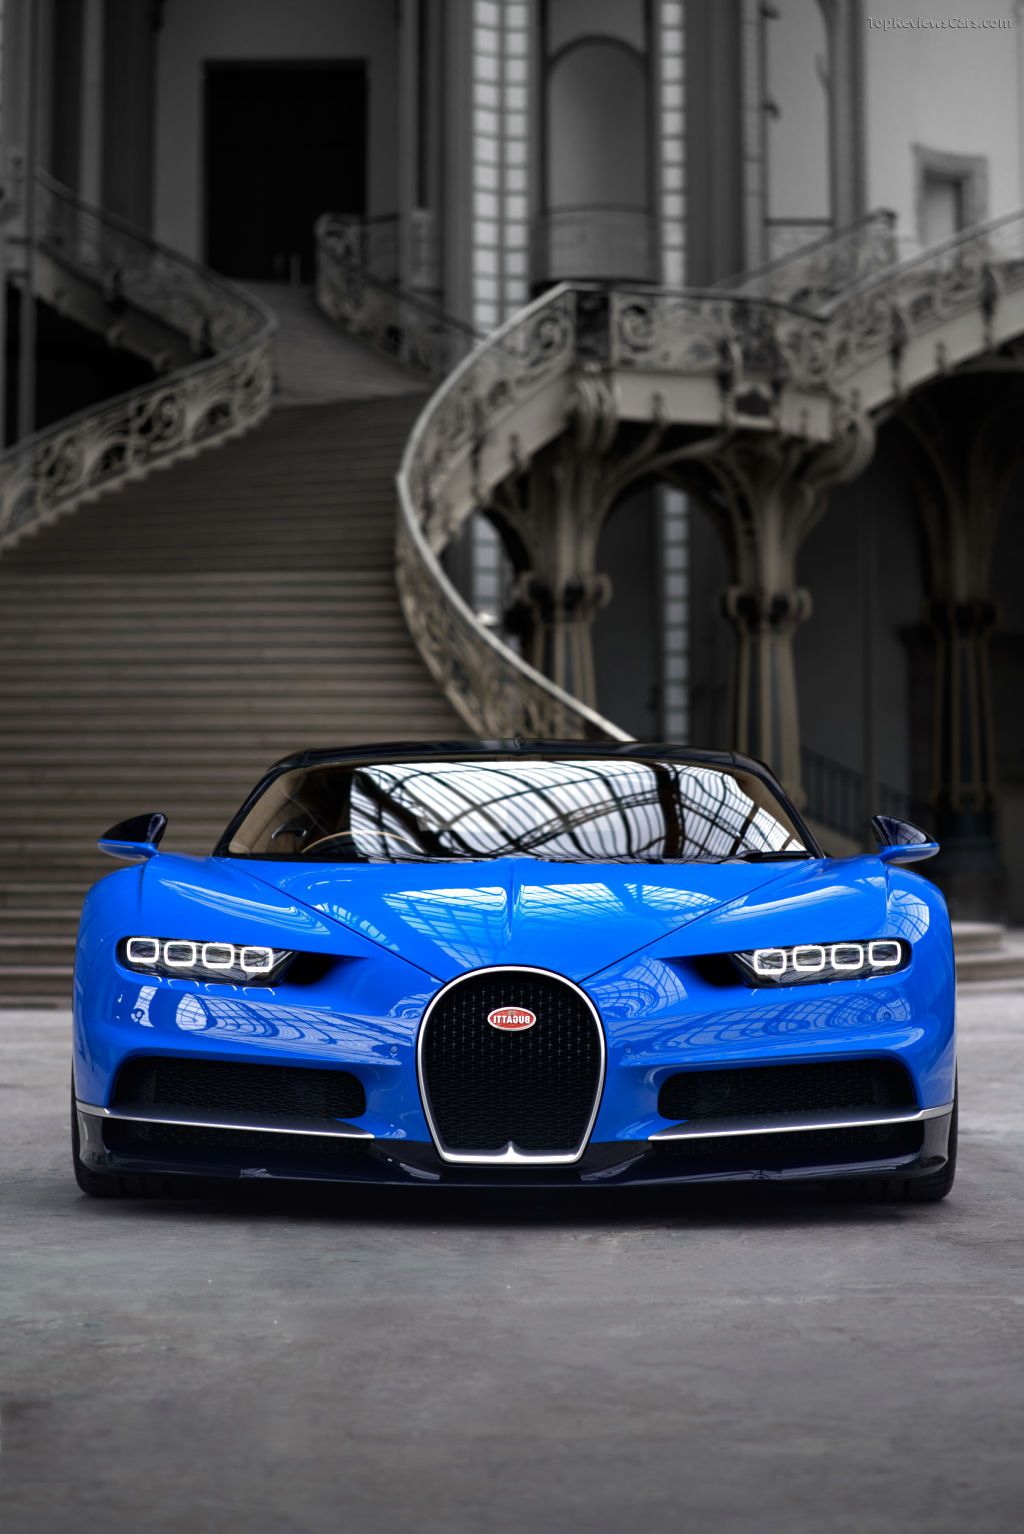 The Bugatti Eb110 Sports Cars Luxury Bugatti Chiron Super Car